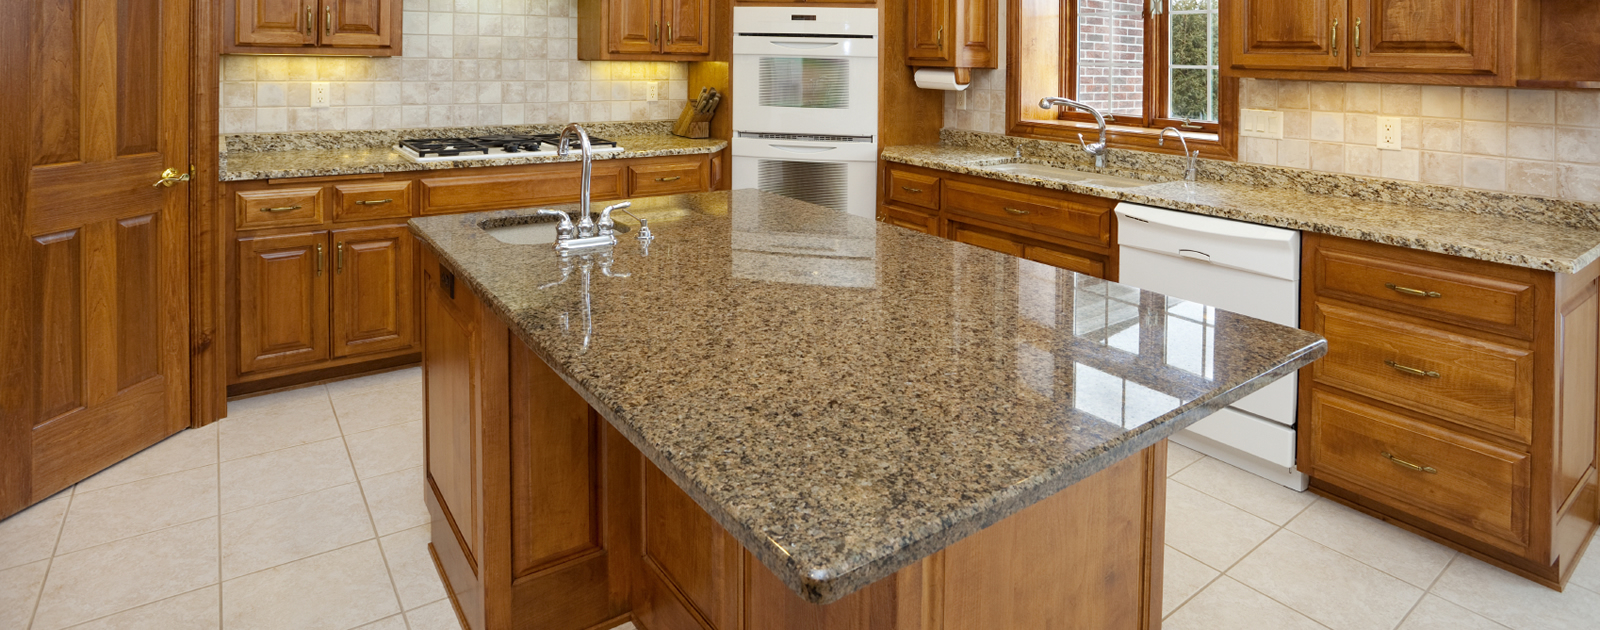 Twin Cities Top Rated Discount Granite Countertop Installation ...